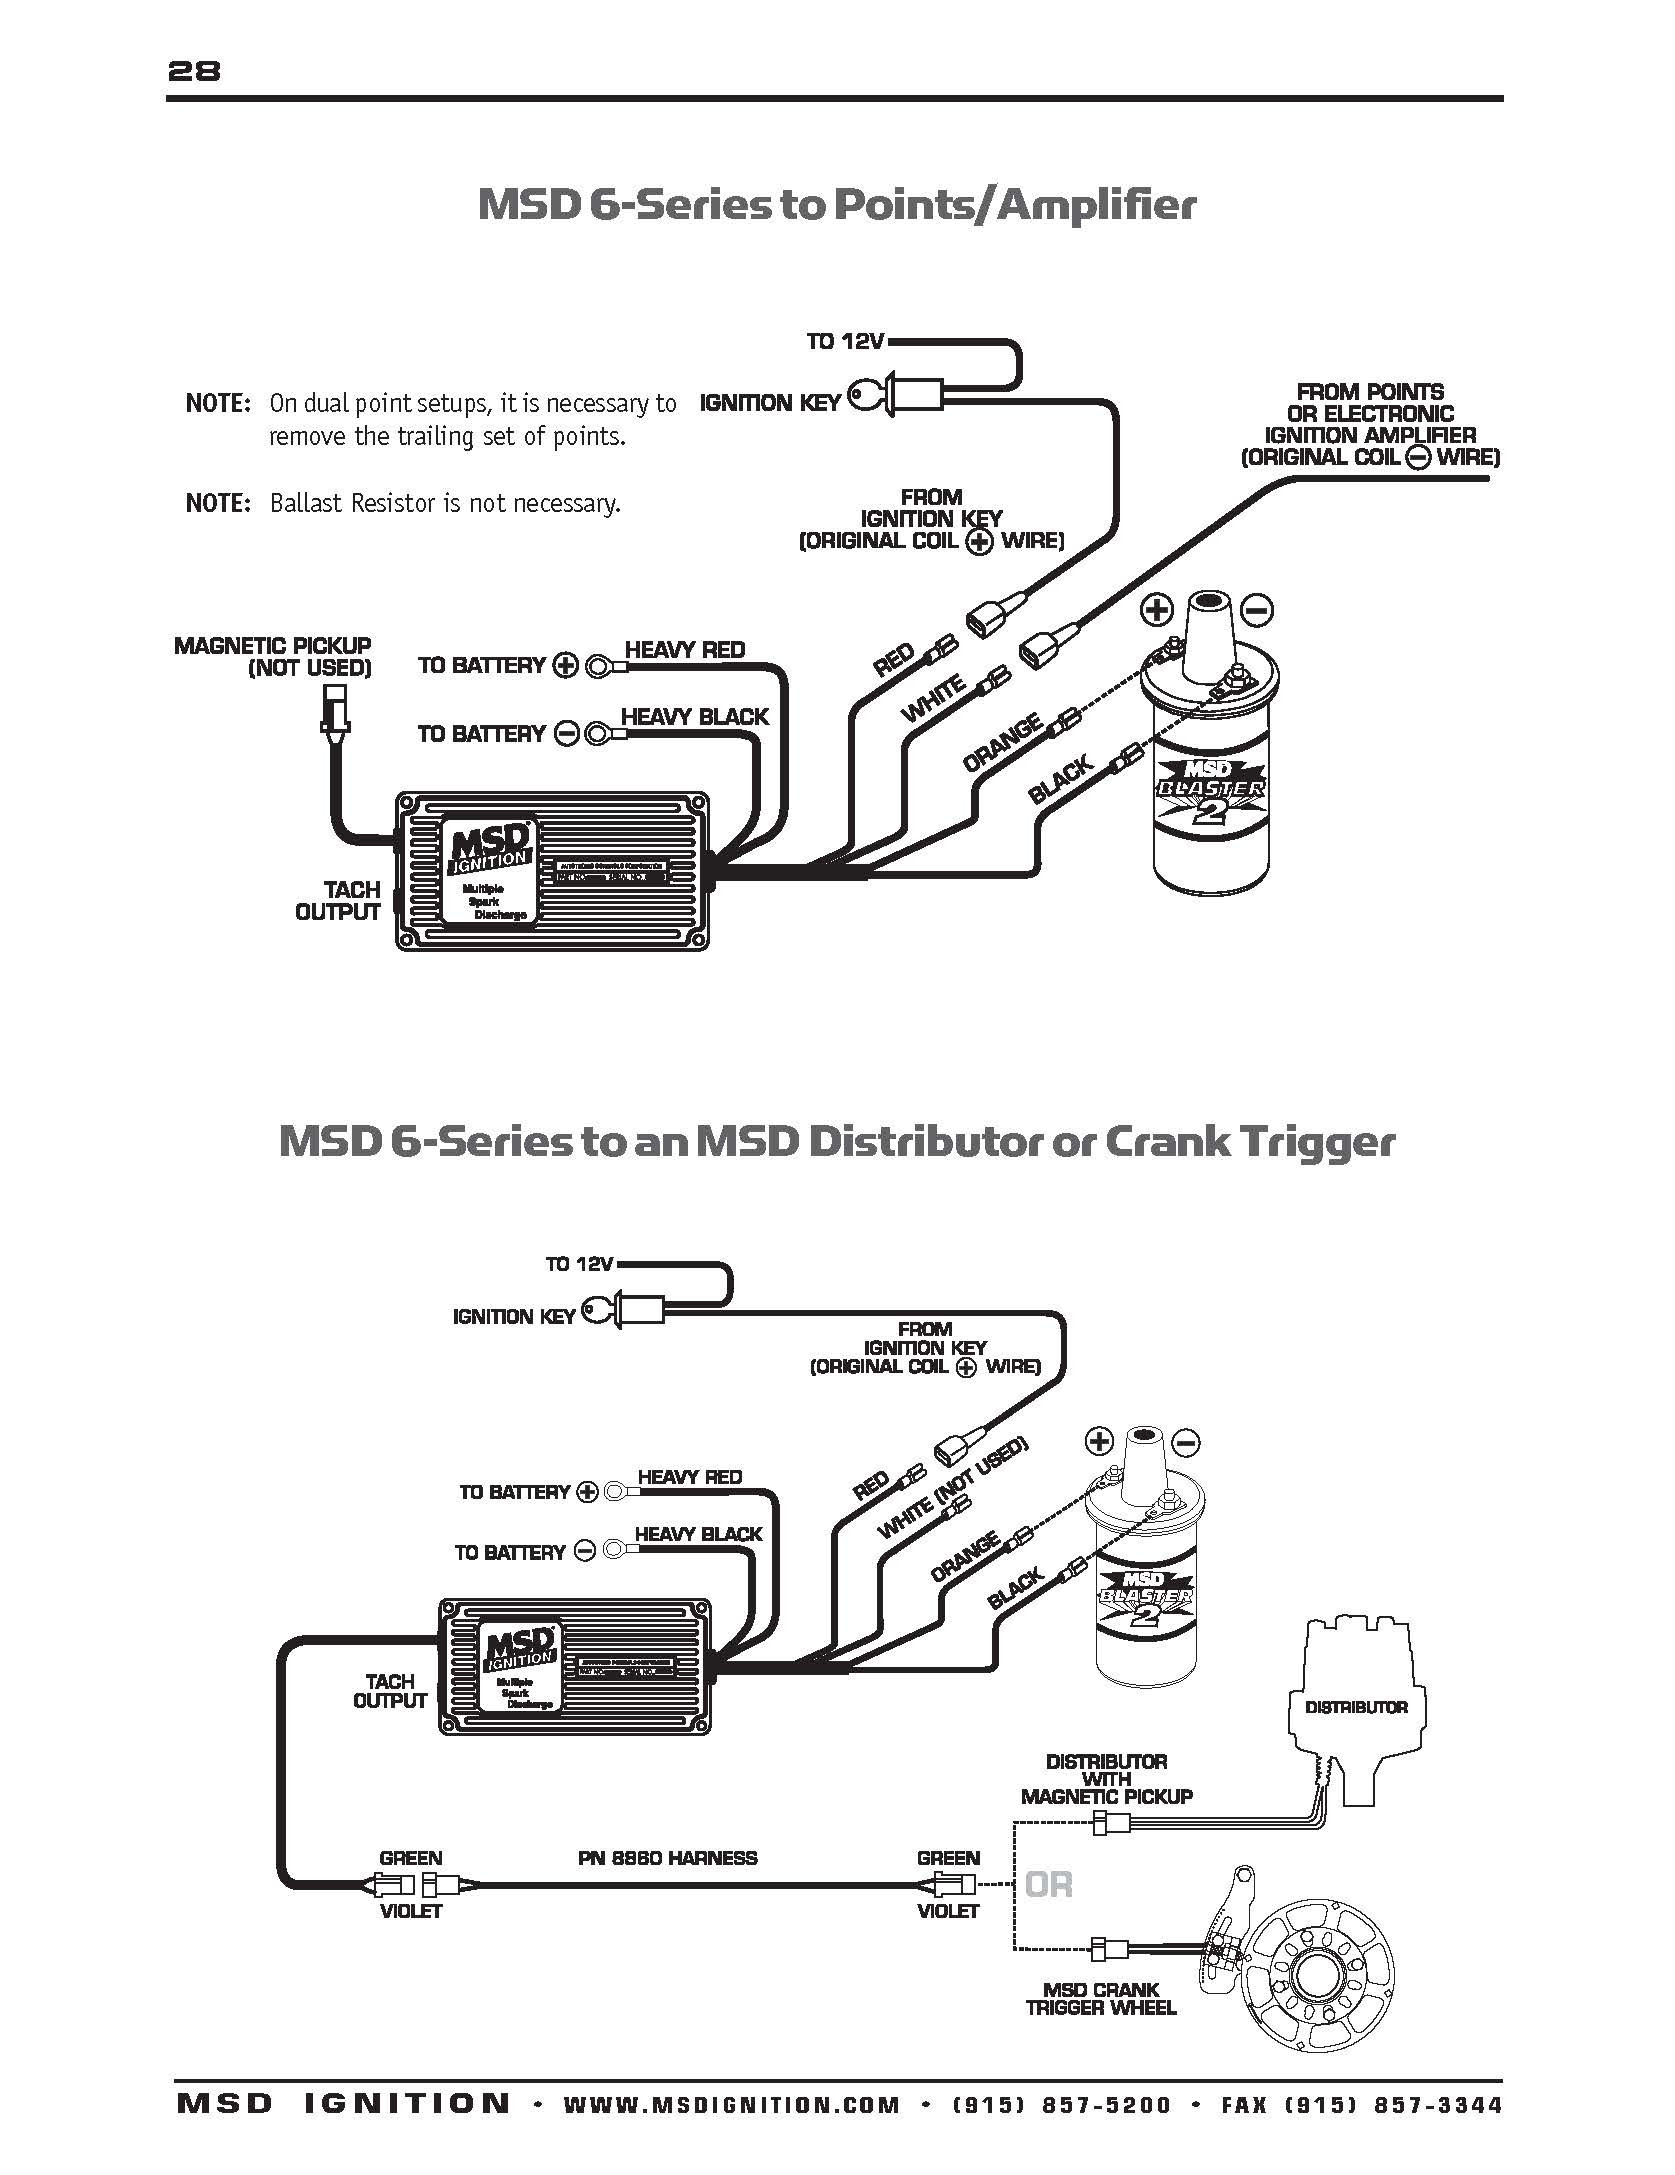 Mallory Yl Wiring Diagrams | Wiring Diagram on